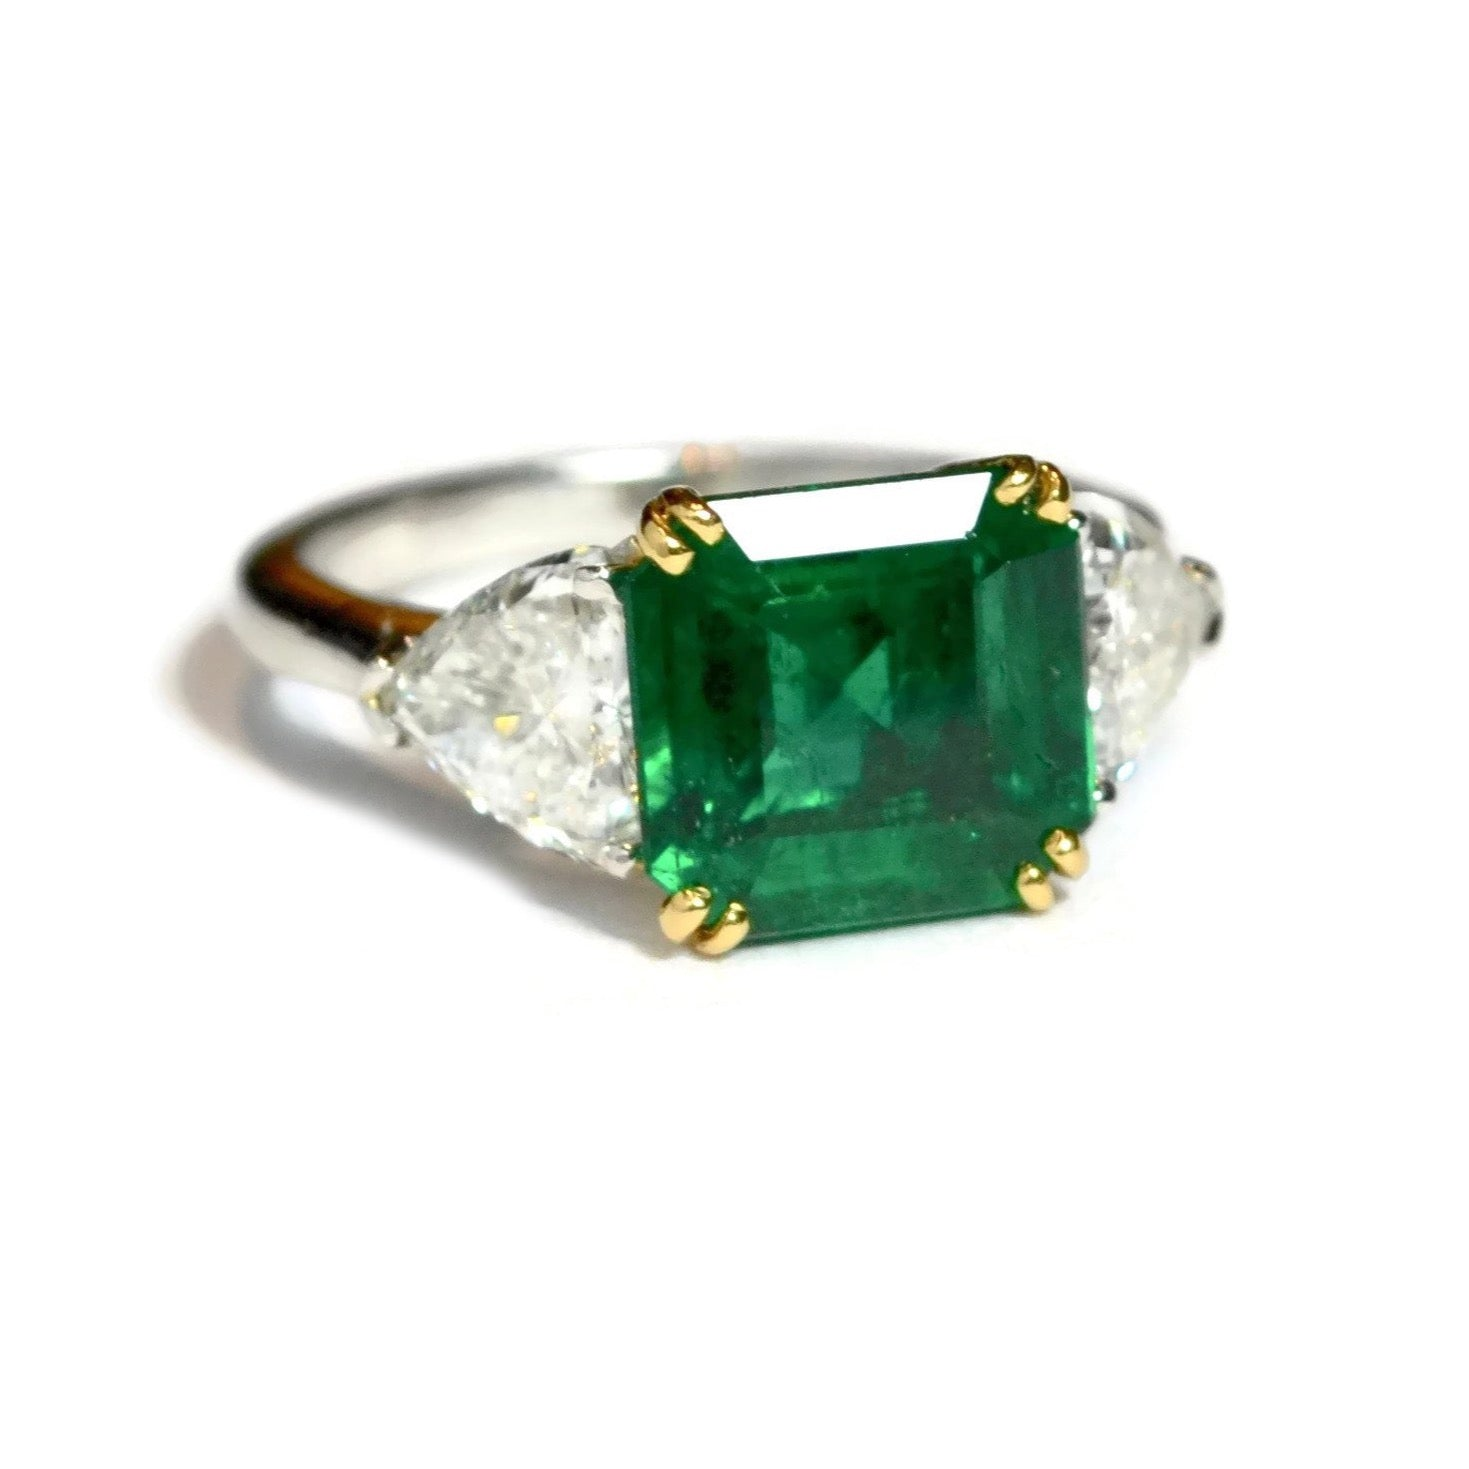 claudia look endler diamond emerald ring slim designs at linear